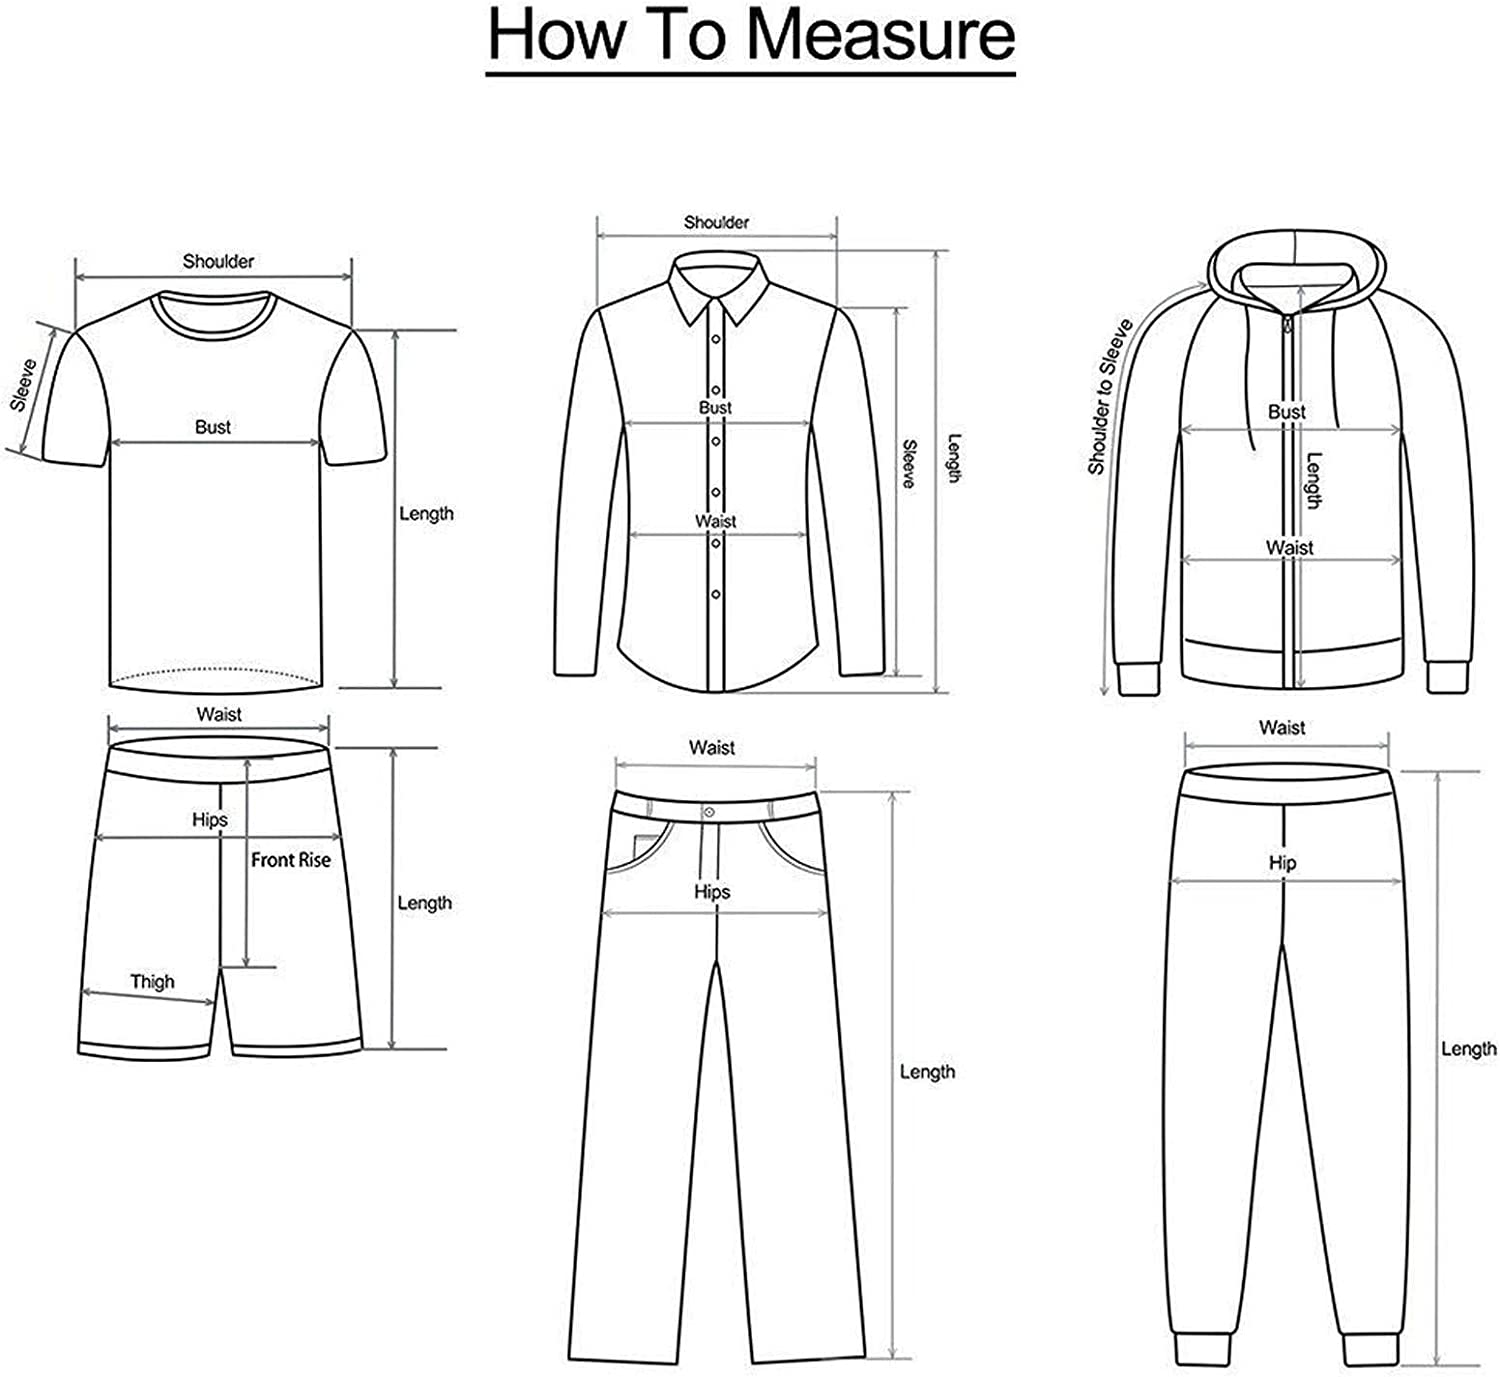 Mens Blazer Jacket Slim Fit Casual One Button Suit Coat Court Style Dark Grain Design Fashion Jacket for Prom Party